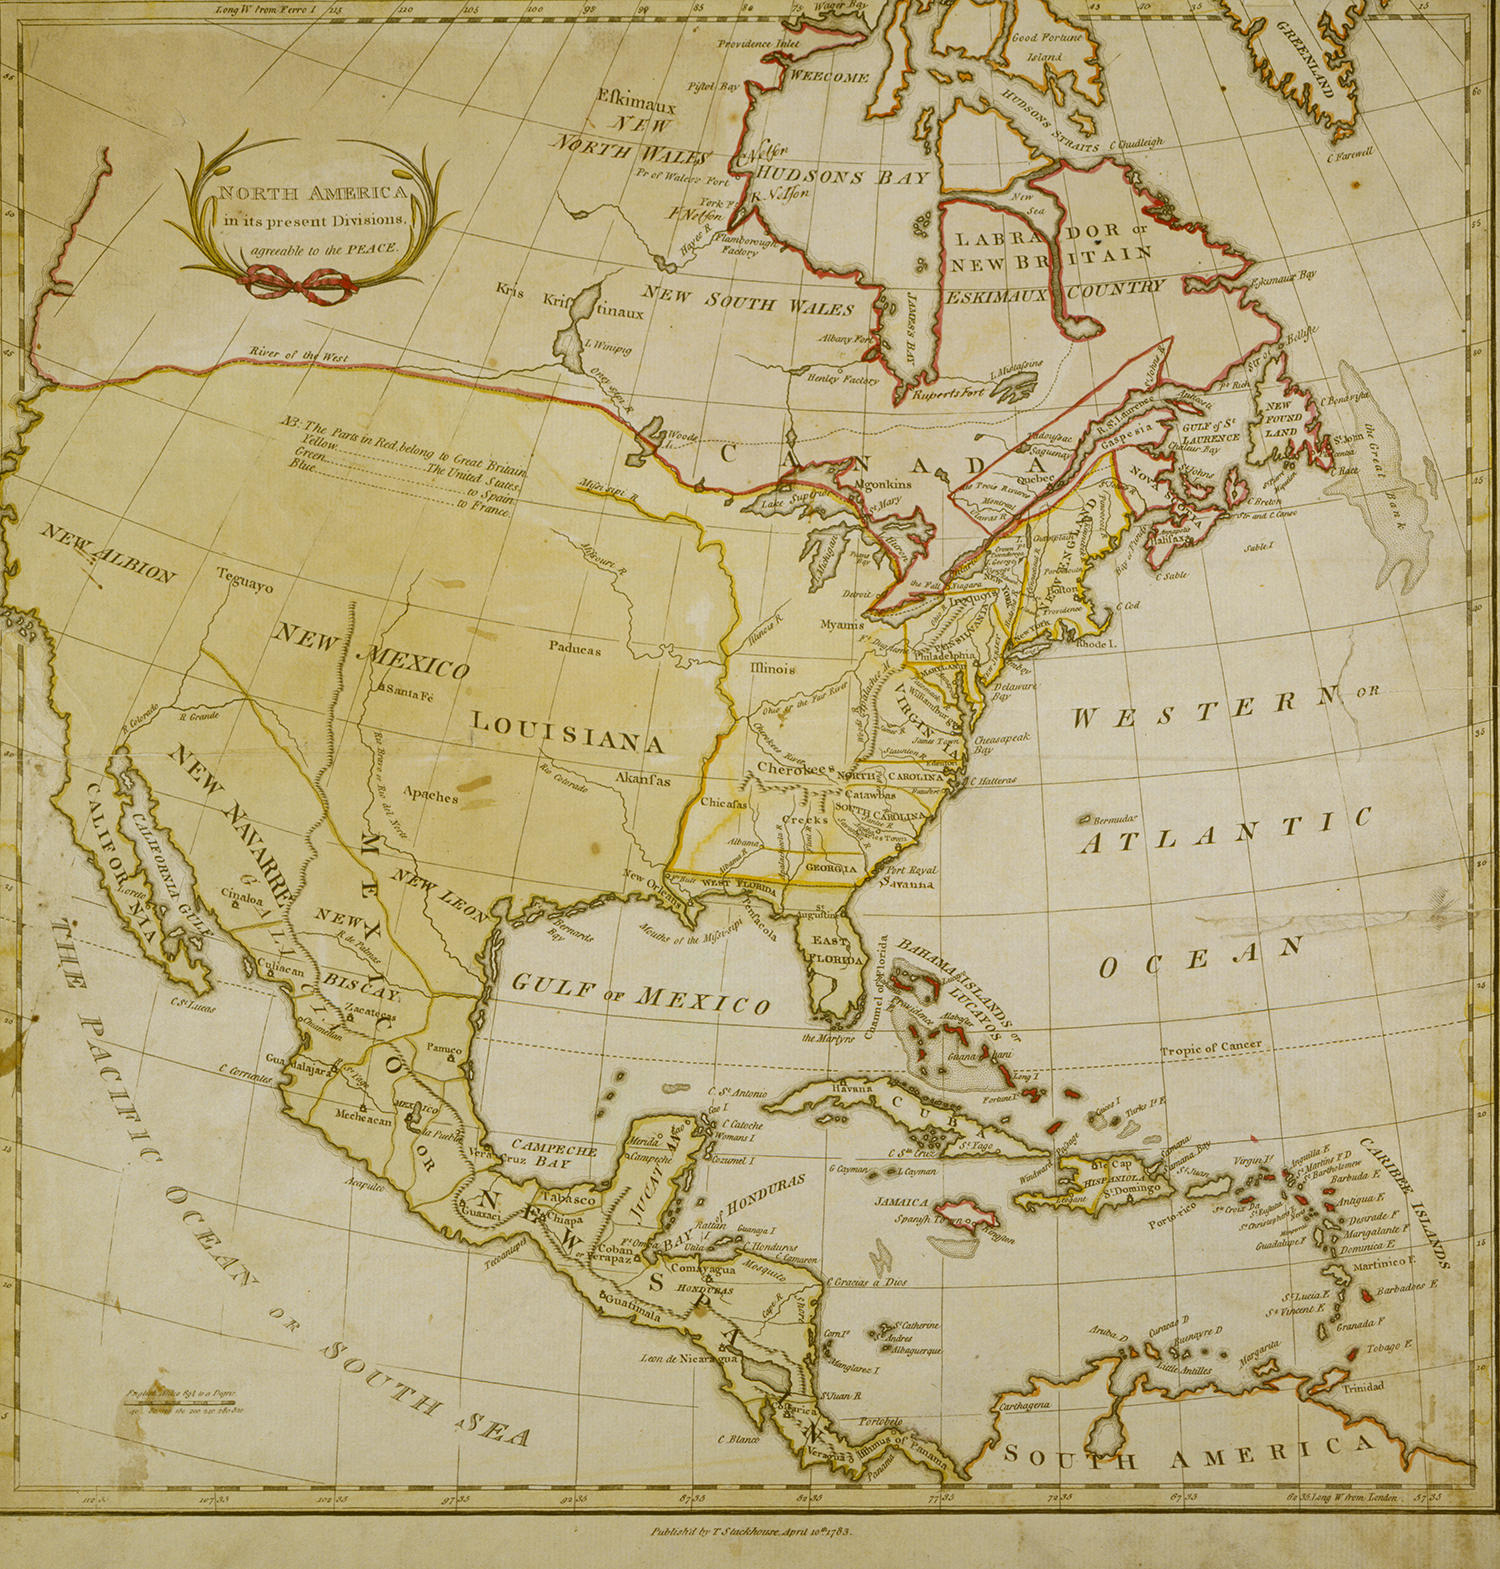 Map Of Louisiana Territory.Louisiana Purchase Treaty Makes Rare Appearance At History Museum